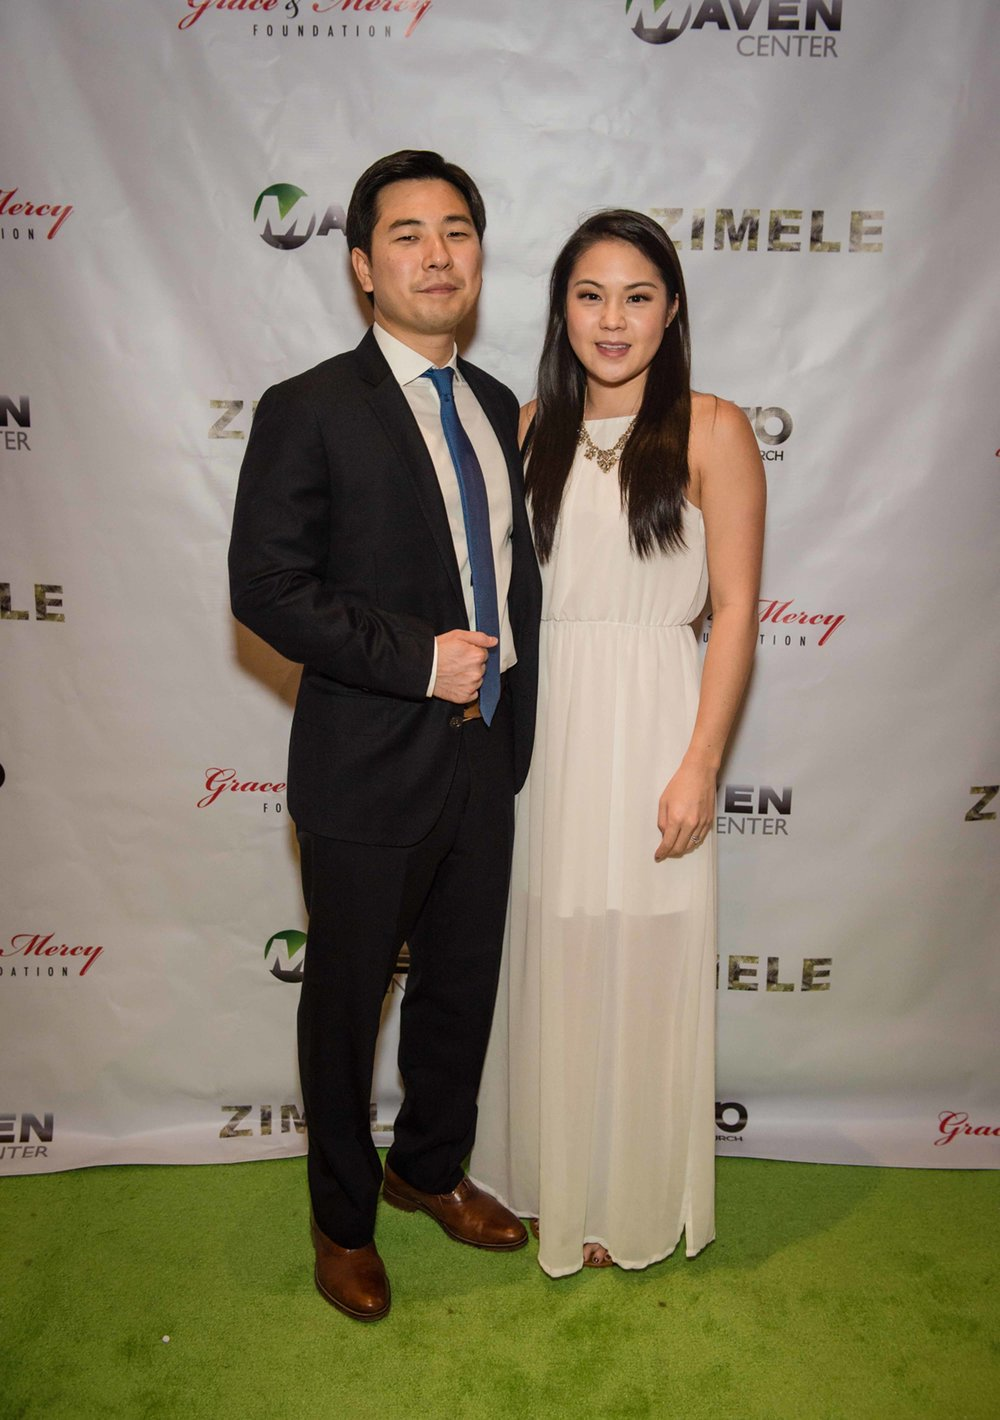 2017-10-21 Zimele USA 6th Annual Gala - Maritime Parc - Jersey City NJ_0072.jpg